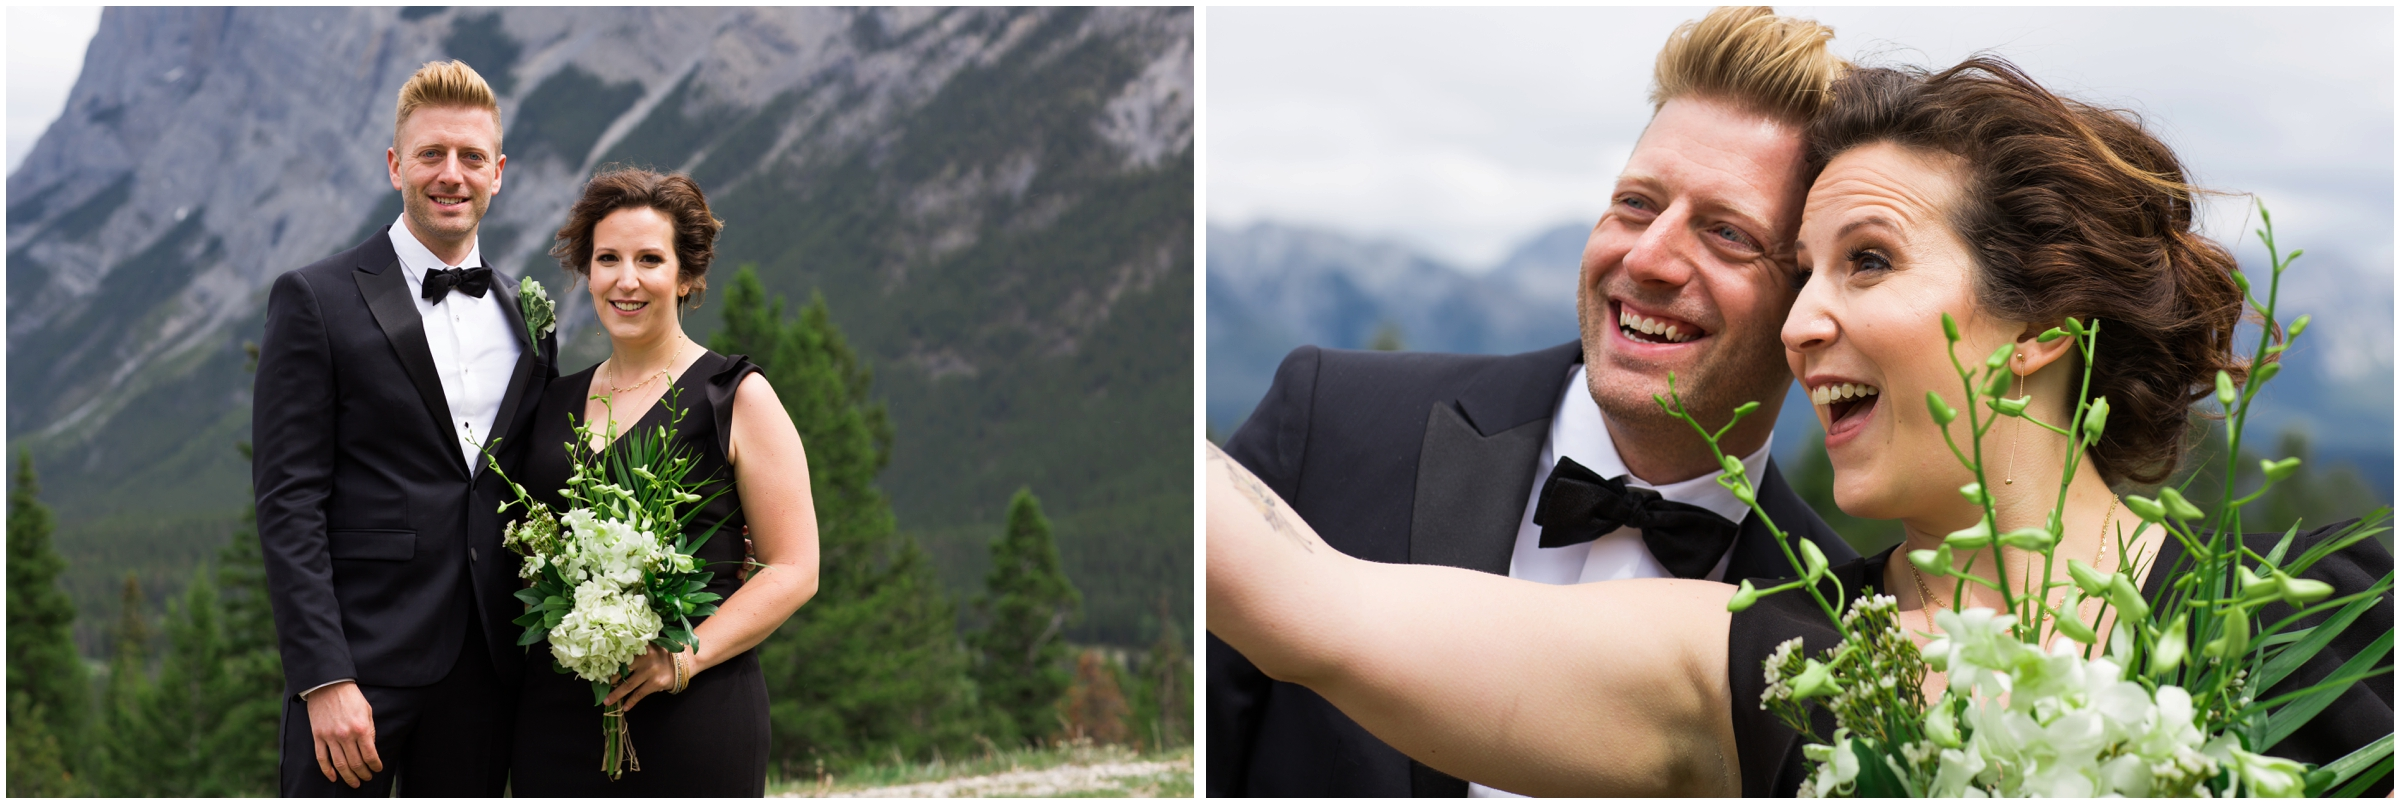 Banff Calgary Wedding - (Selena Phillips-Boyle)_0016.jpg